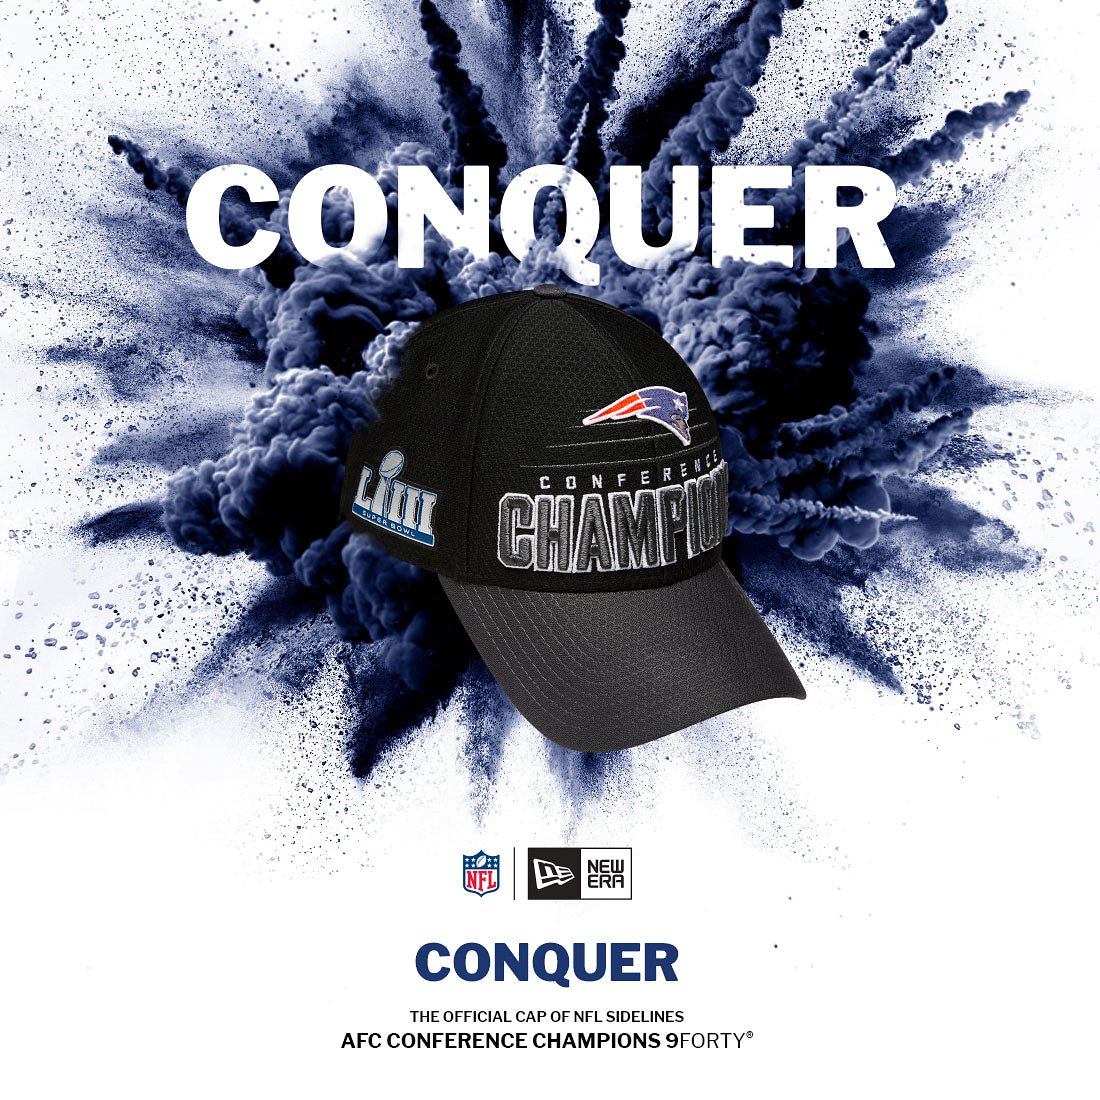 fa9dfff822d Shop for your AFC Championship hats   tees now  http   bit.ly PatriotAFC  Also arriving in select New England stores beginning Monday 1 21.